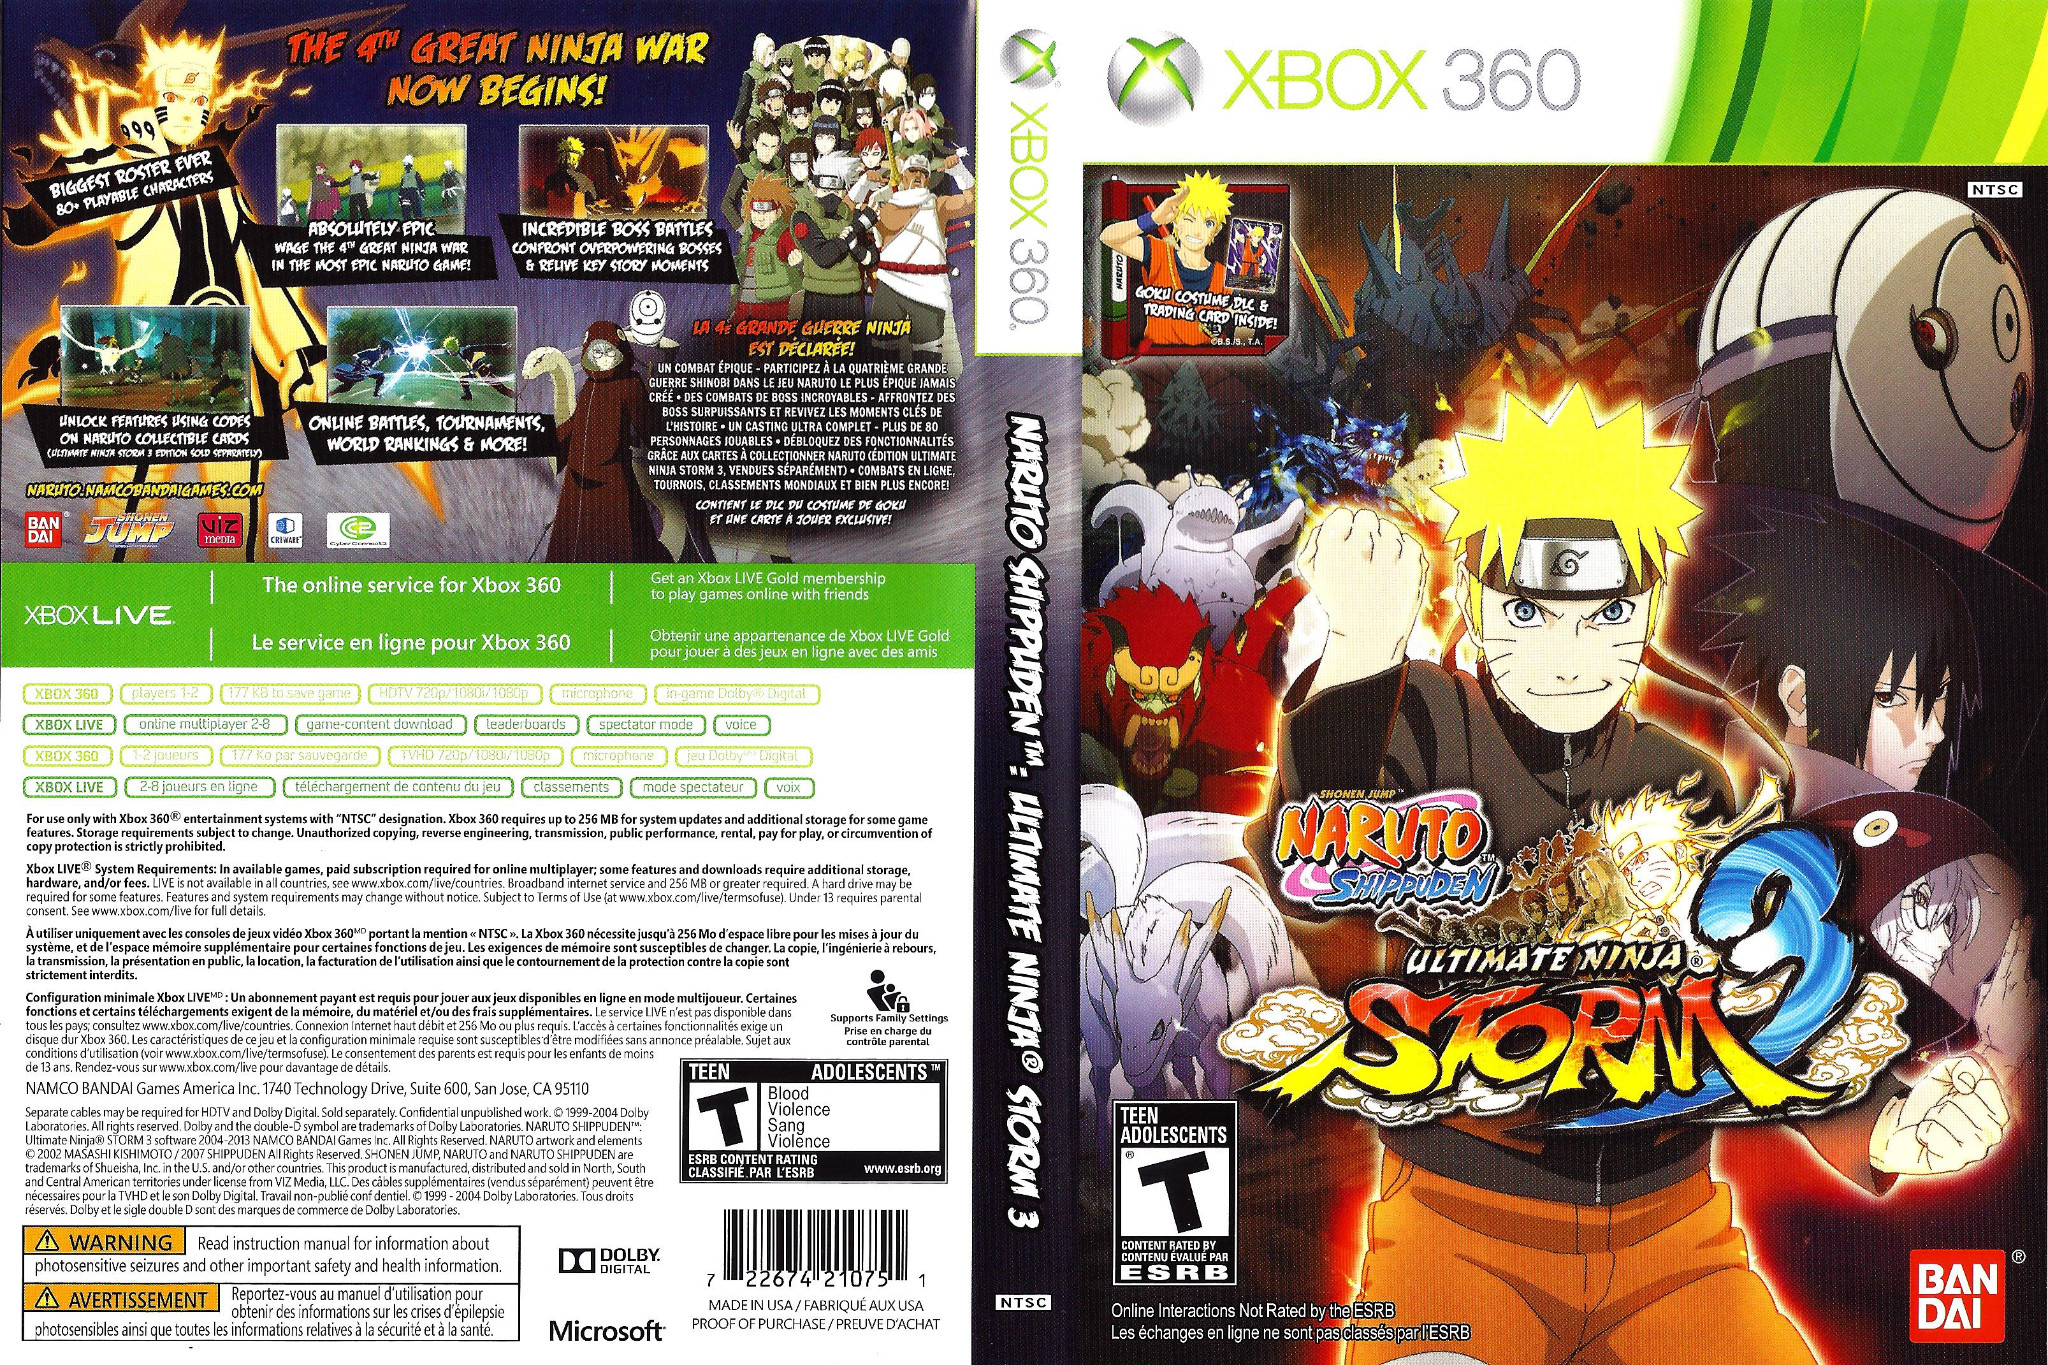 naruto ultimate ninja storm 3 awakening guide